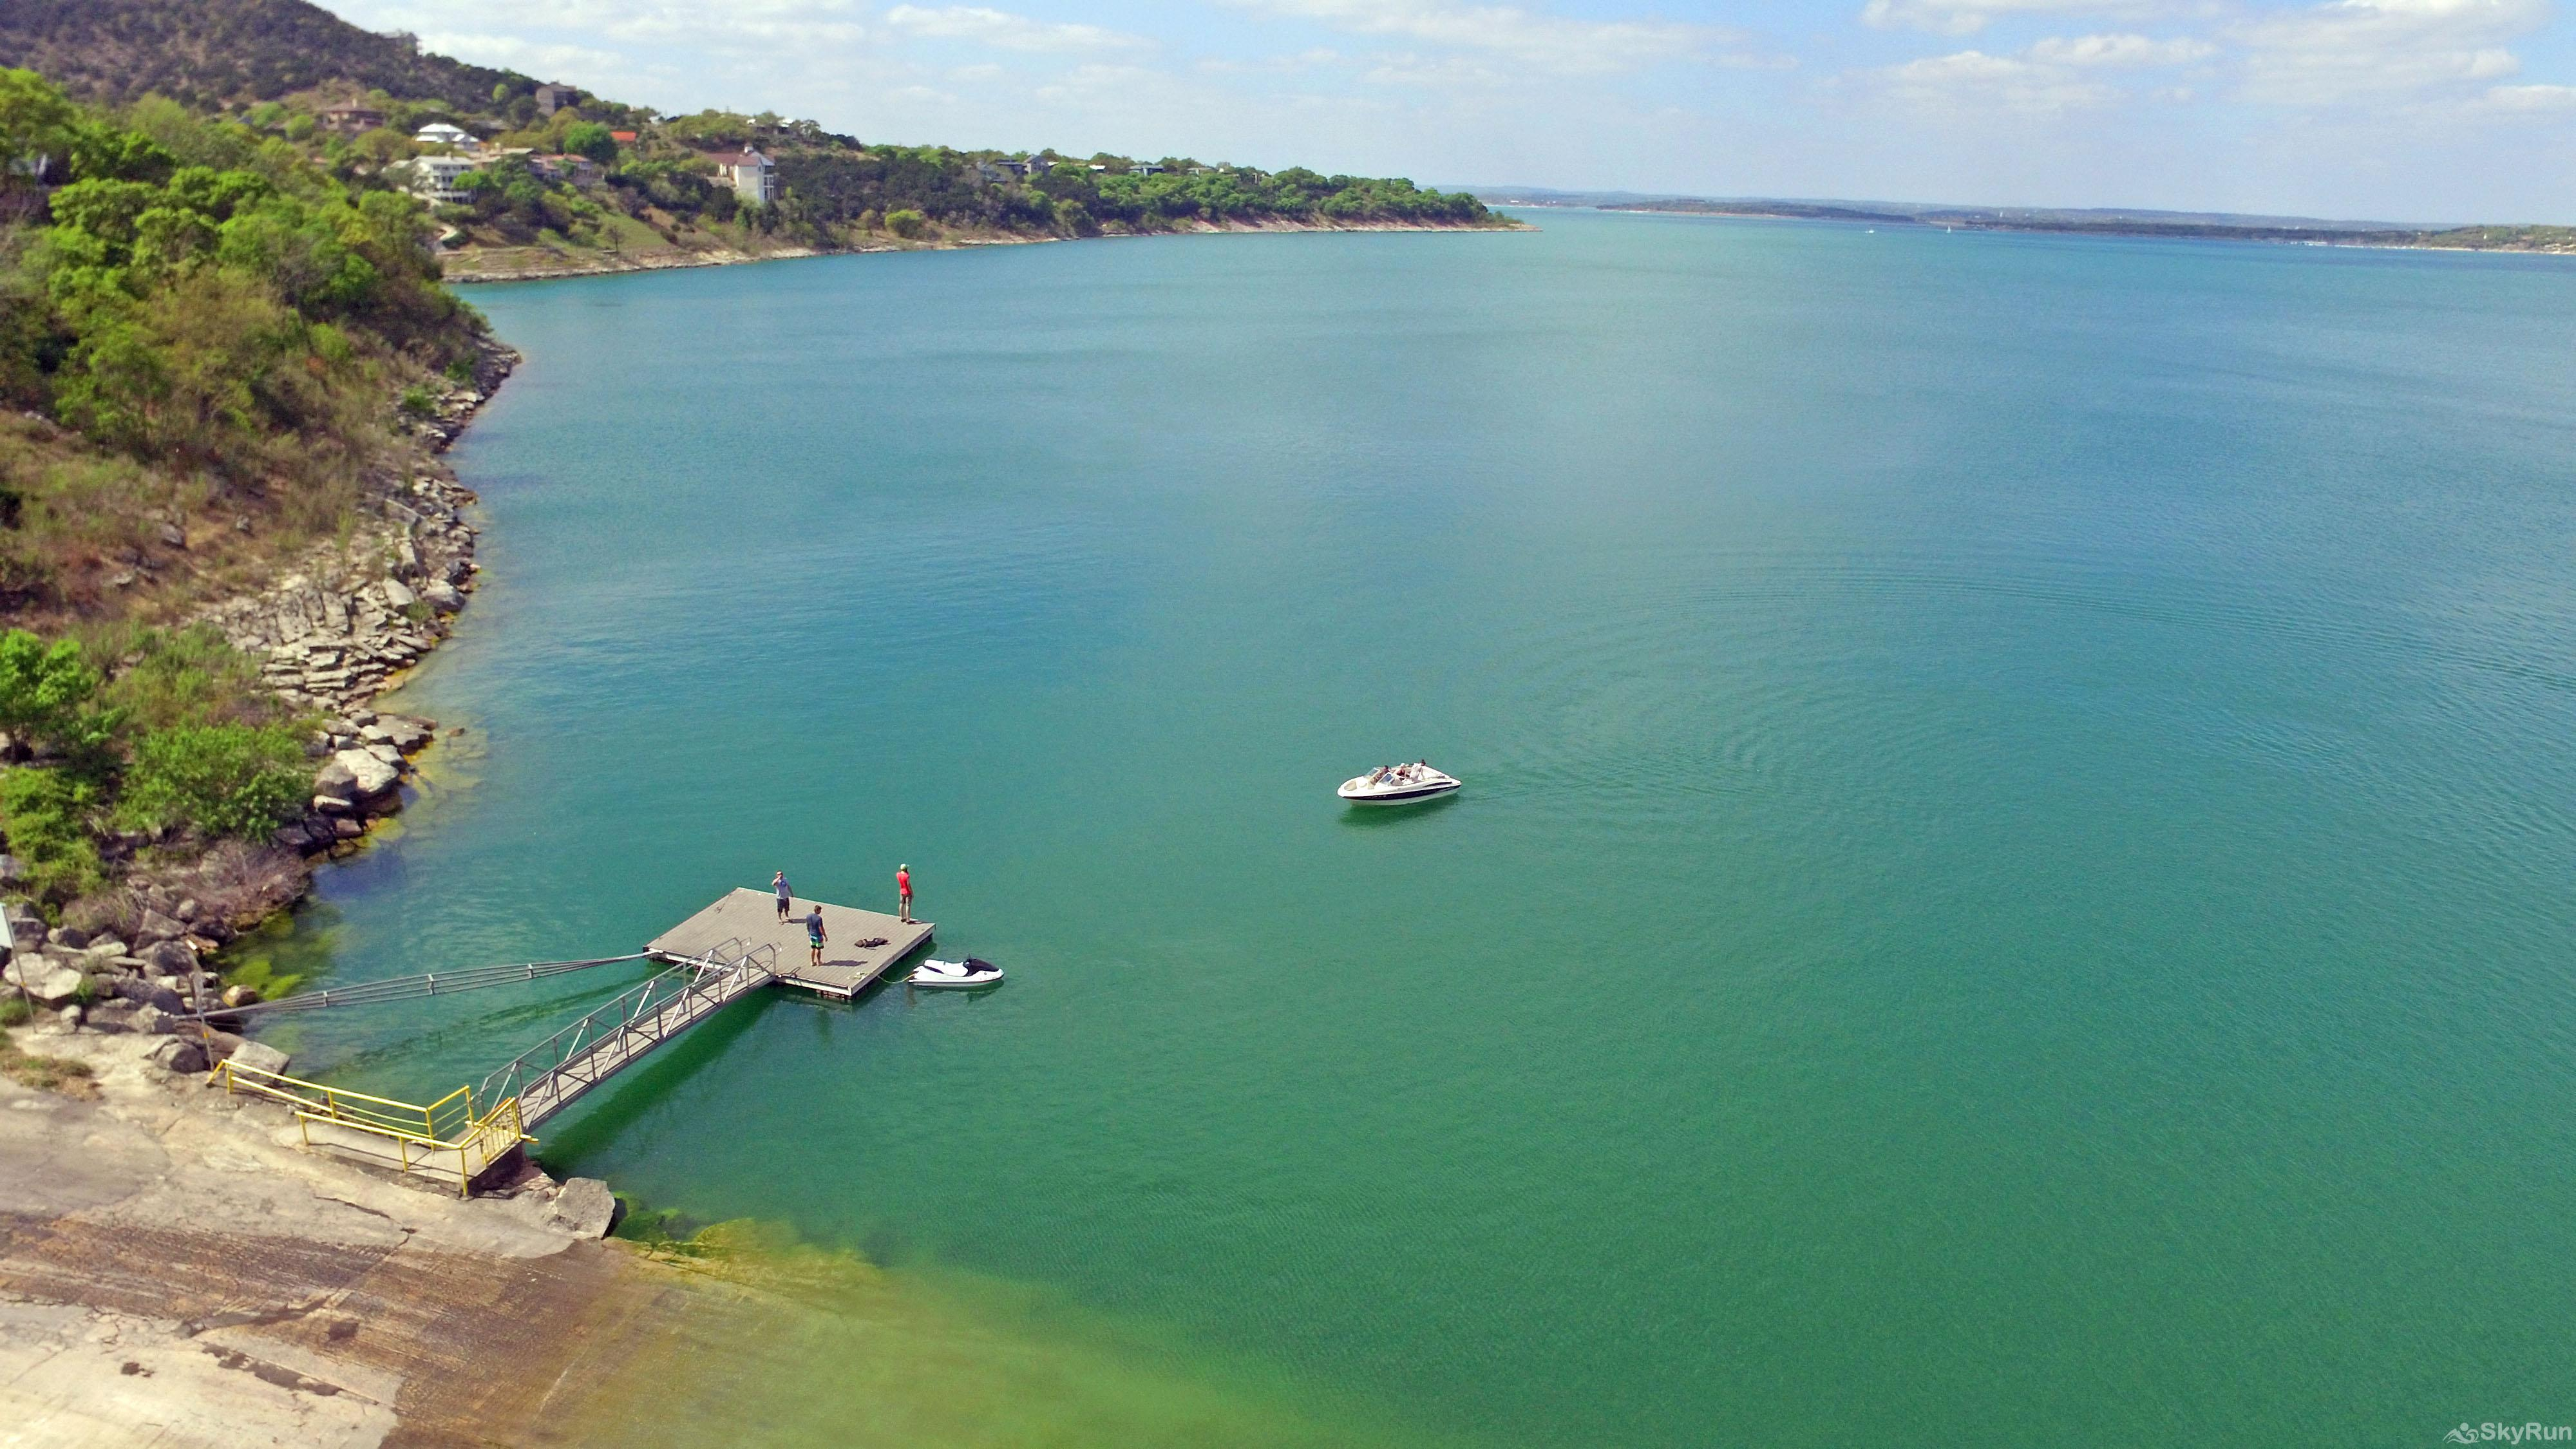 WATERWHEEL ESCAPE CONDO Scenic Canyon Lake, 16 Miles Away